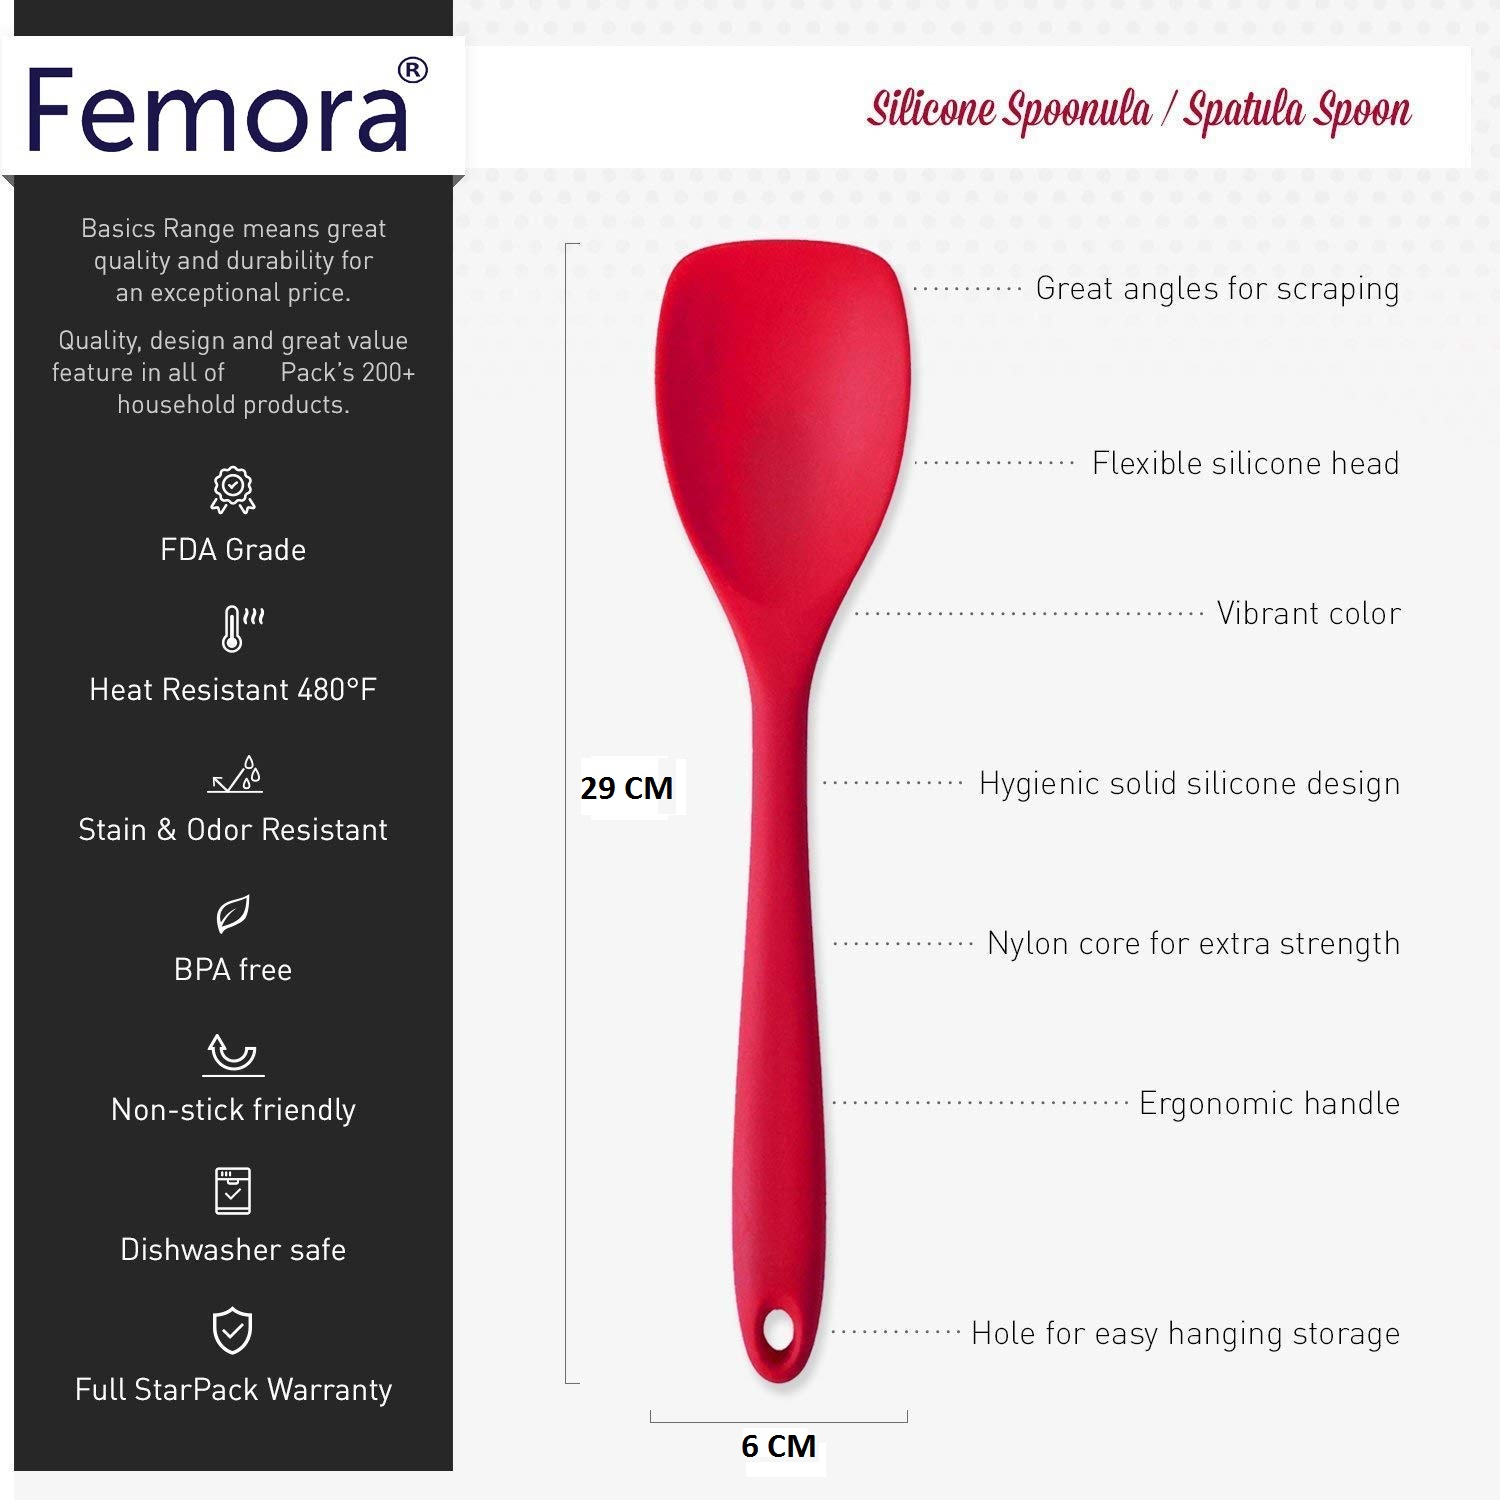 Femora Silicone Premium Egg Whisk, Laddle, Slotted Turner, Sppon with Grip Handle, Red, Set of 4, 1 Year Warranty